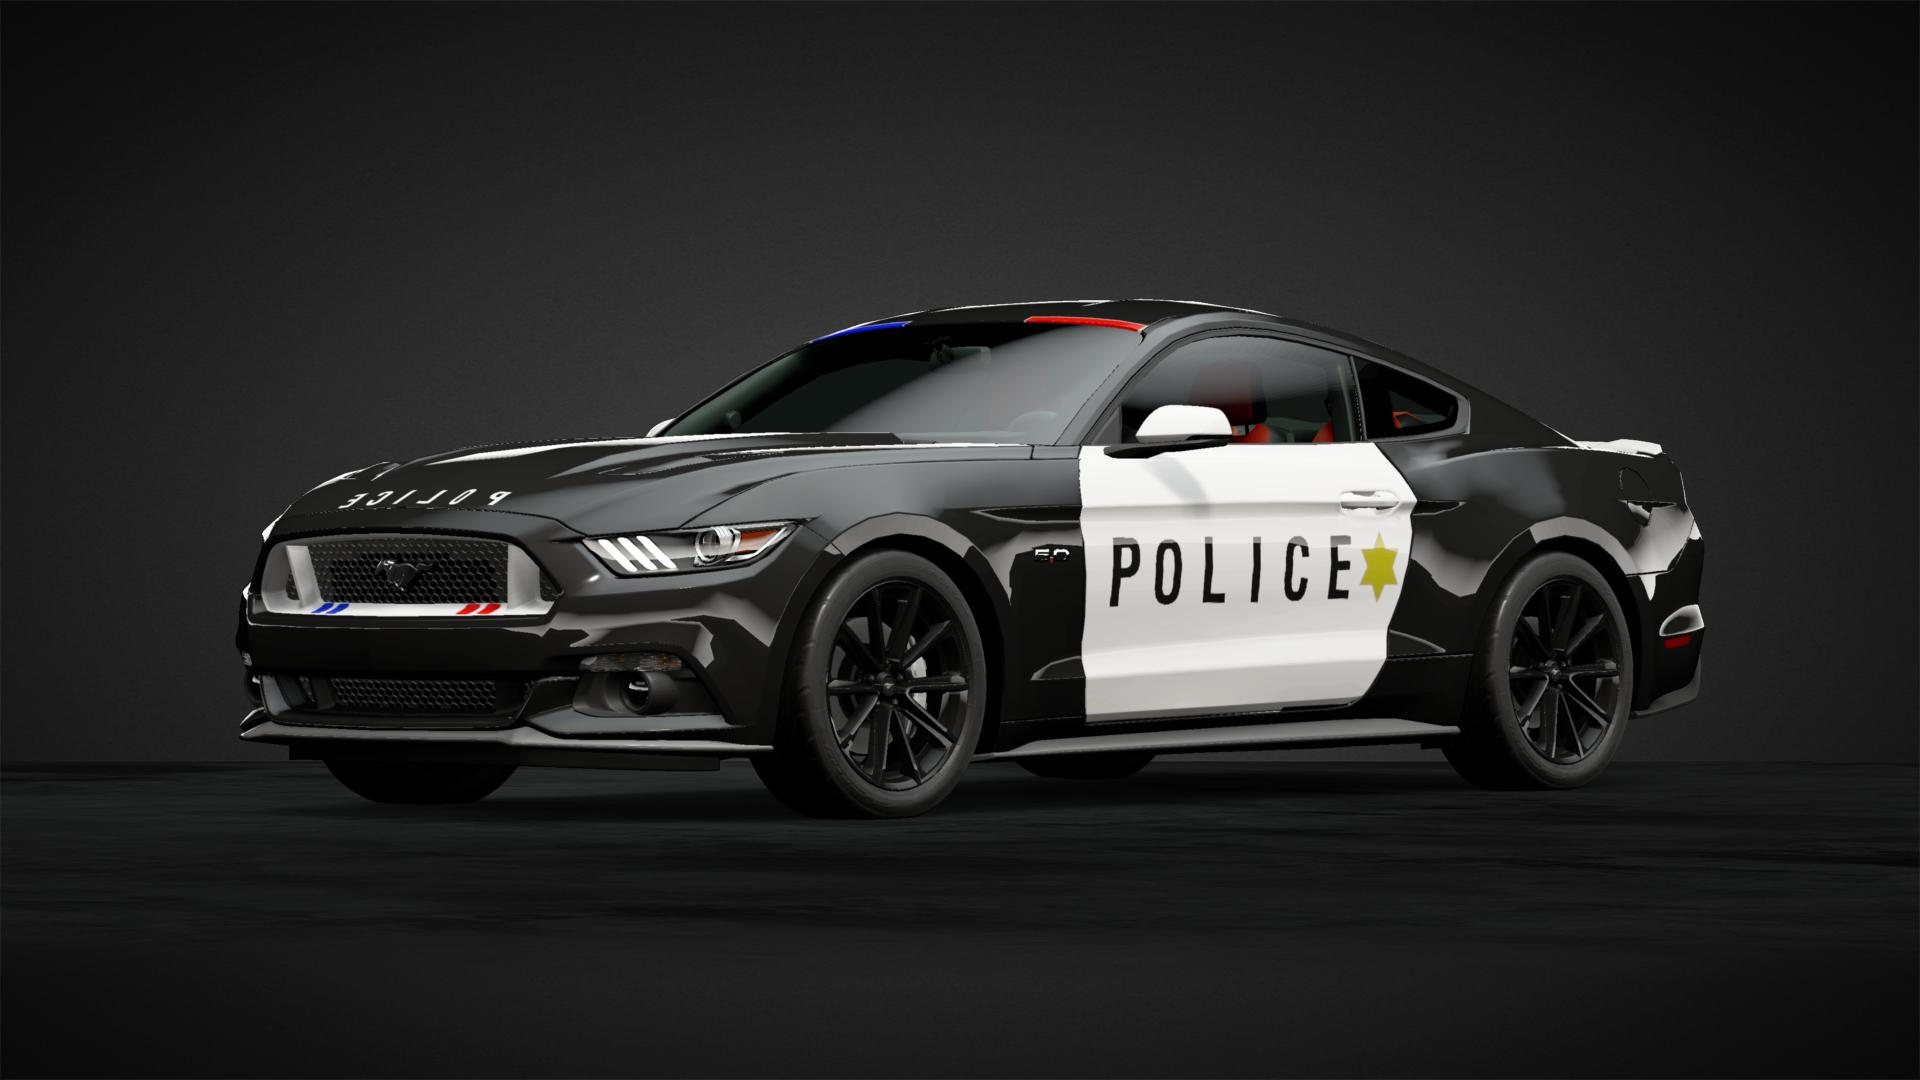 Police Ford Mustang Gt Car Livery By Fplus Community Gran Turismo Sport